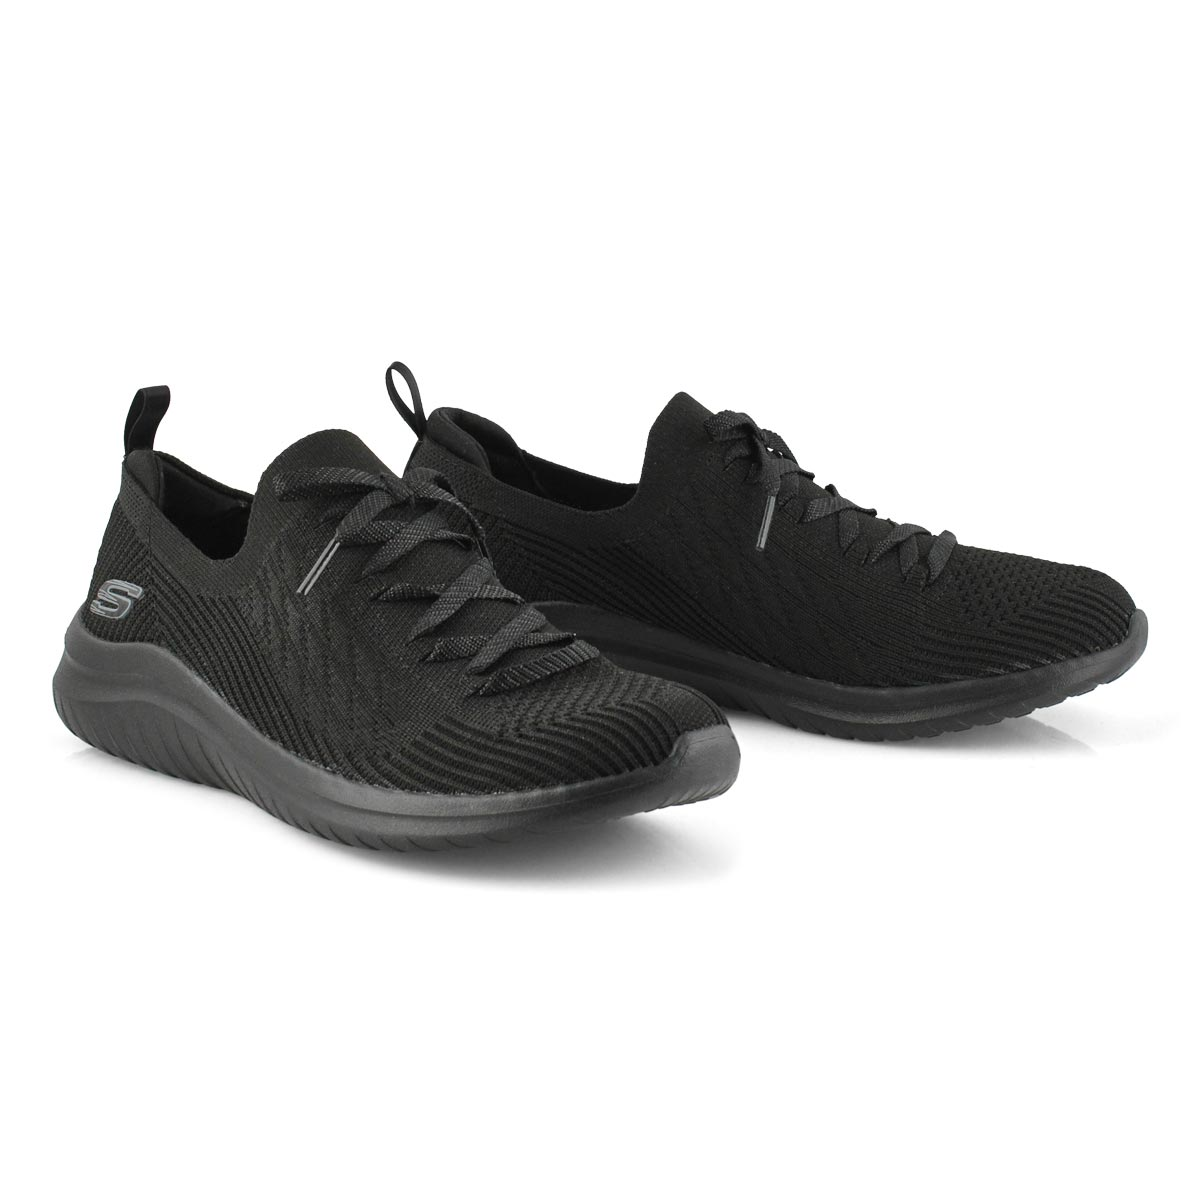 Lds Ultra Flex 2.0 bk/bk slip on sneaker